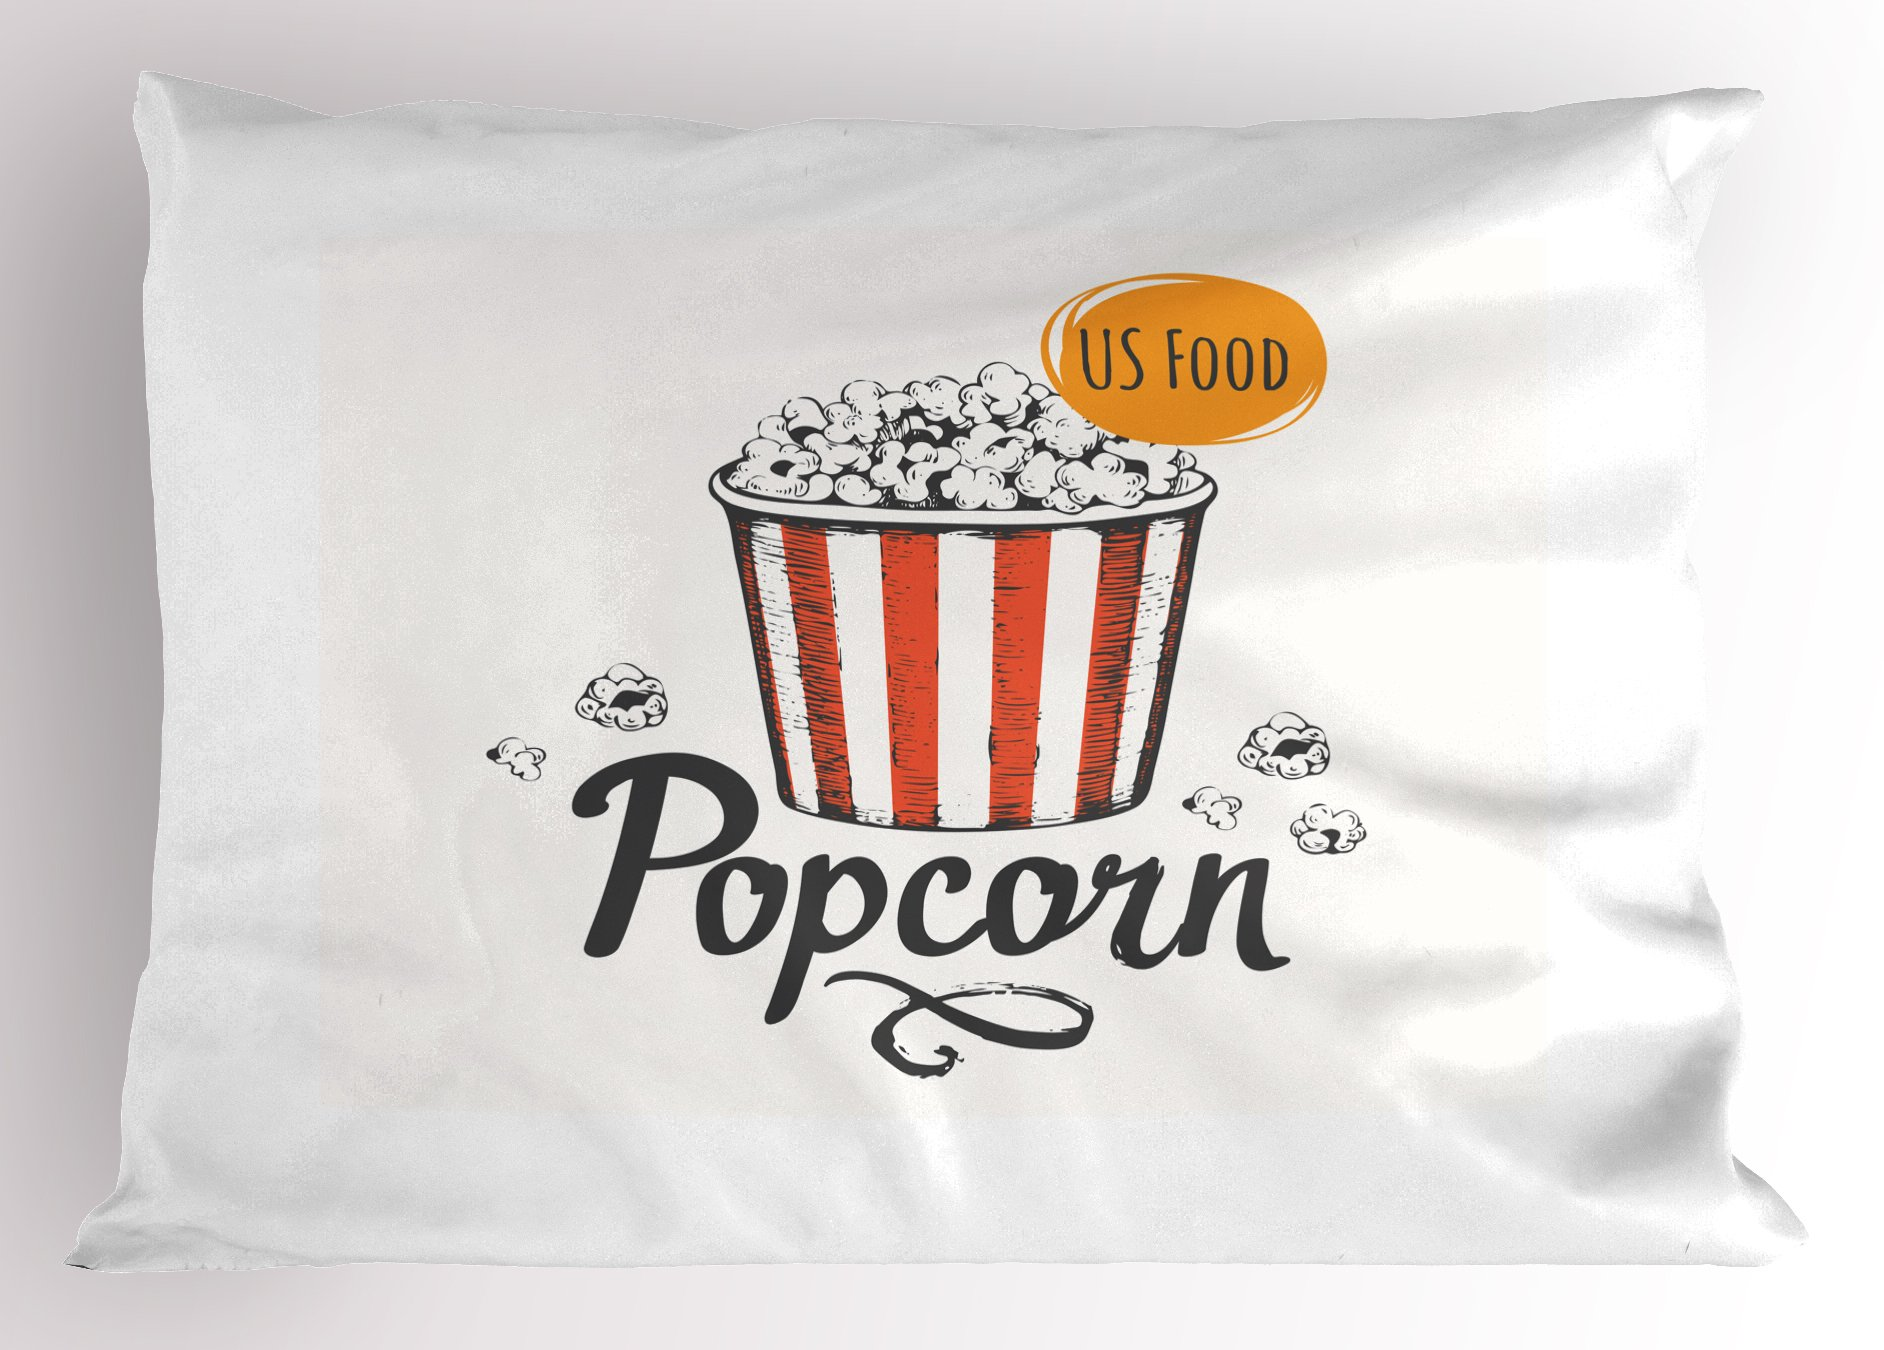 Ambesonne Movie Theater Pillow Sham, Sketch Design Cinema Snack US Fast Food Pop Corn Art, Decorative Standard Queen Size Printed Pillowcase, 30 X 20 inches, Charcoal Grey Vermilion Marigold